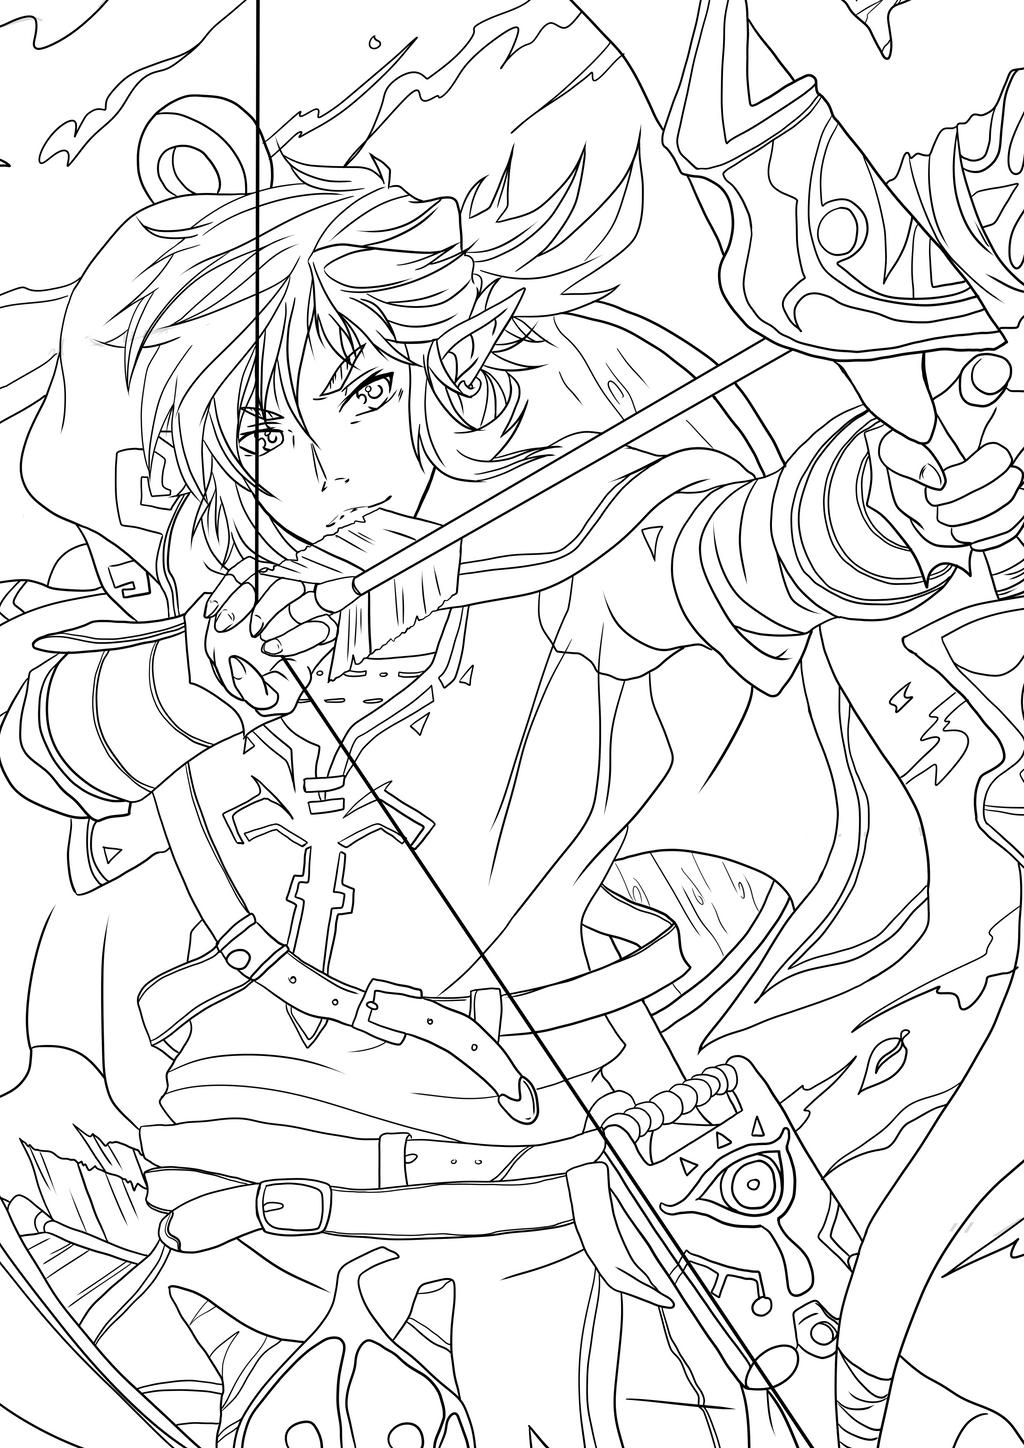 Link Breath of the wild - outlines by Sebbi-chan on DeviantArt